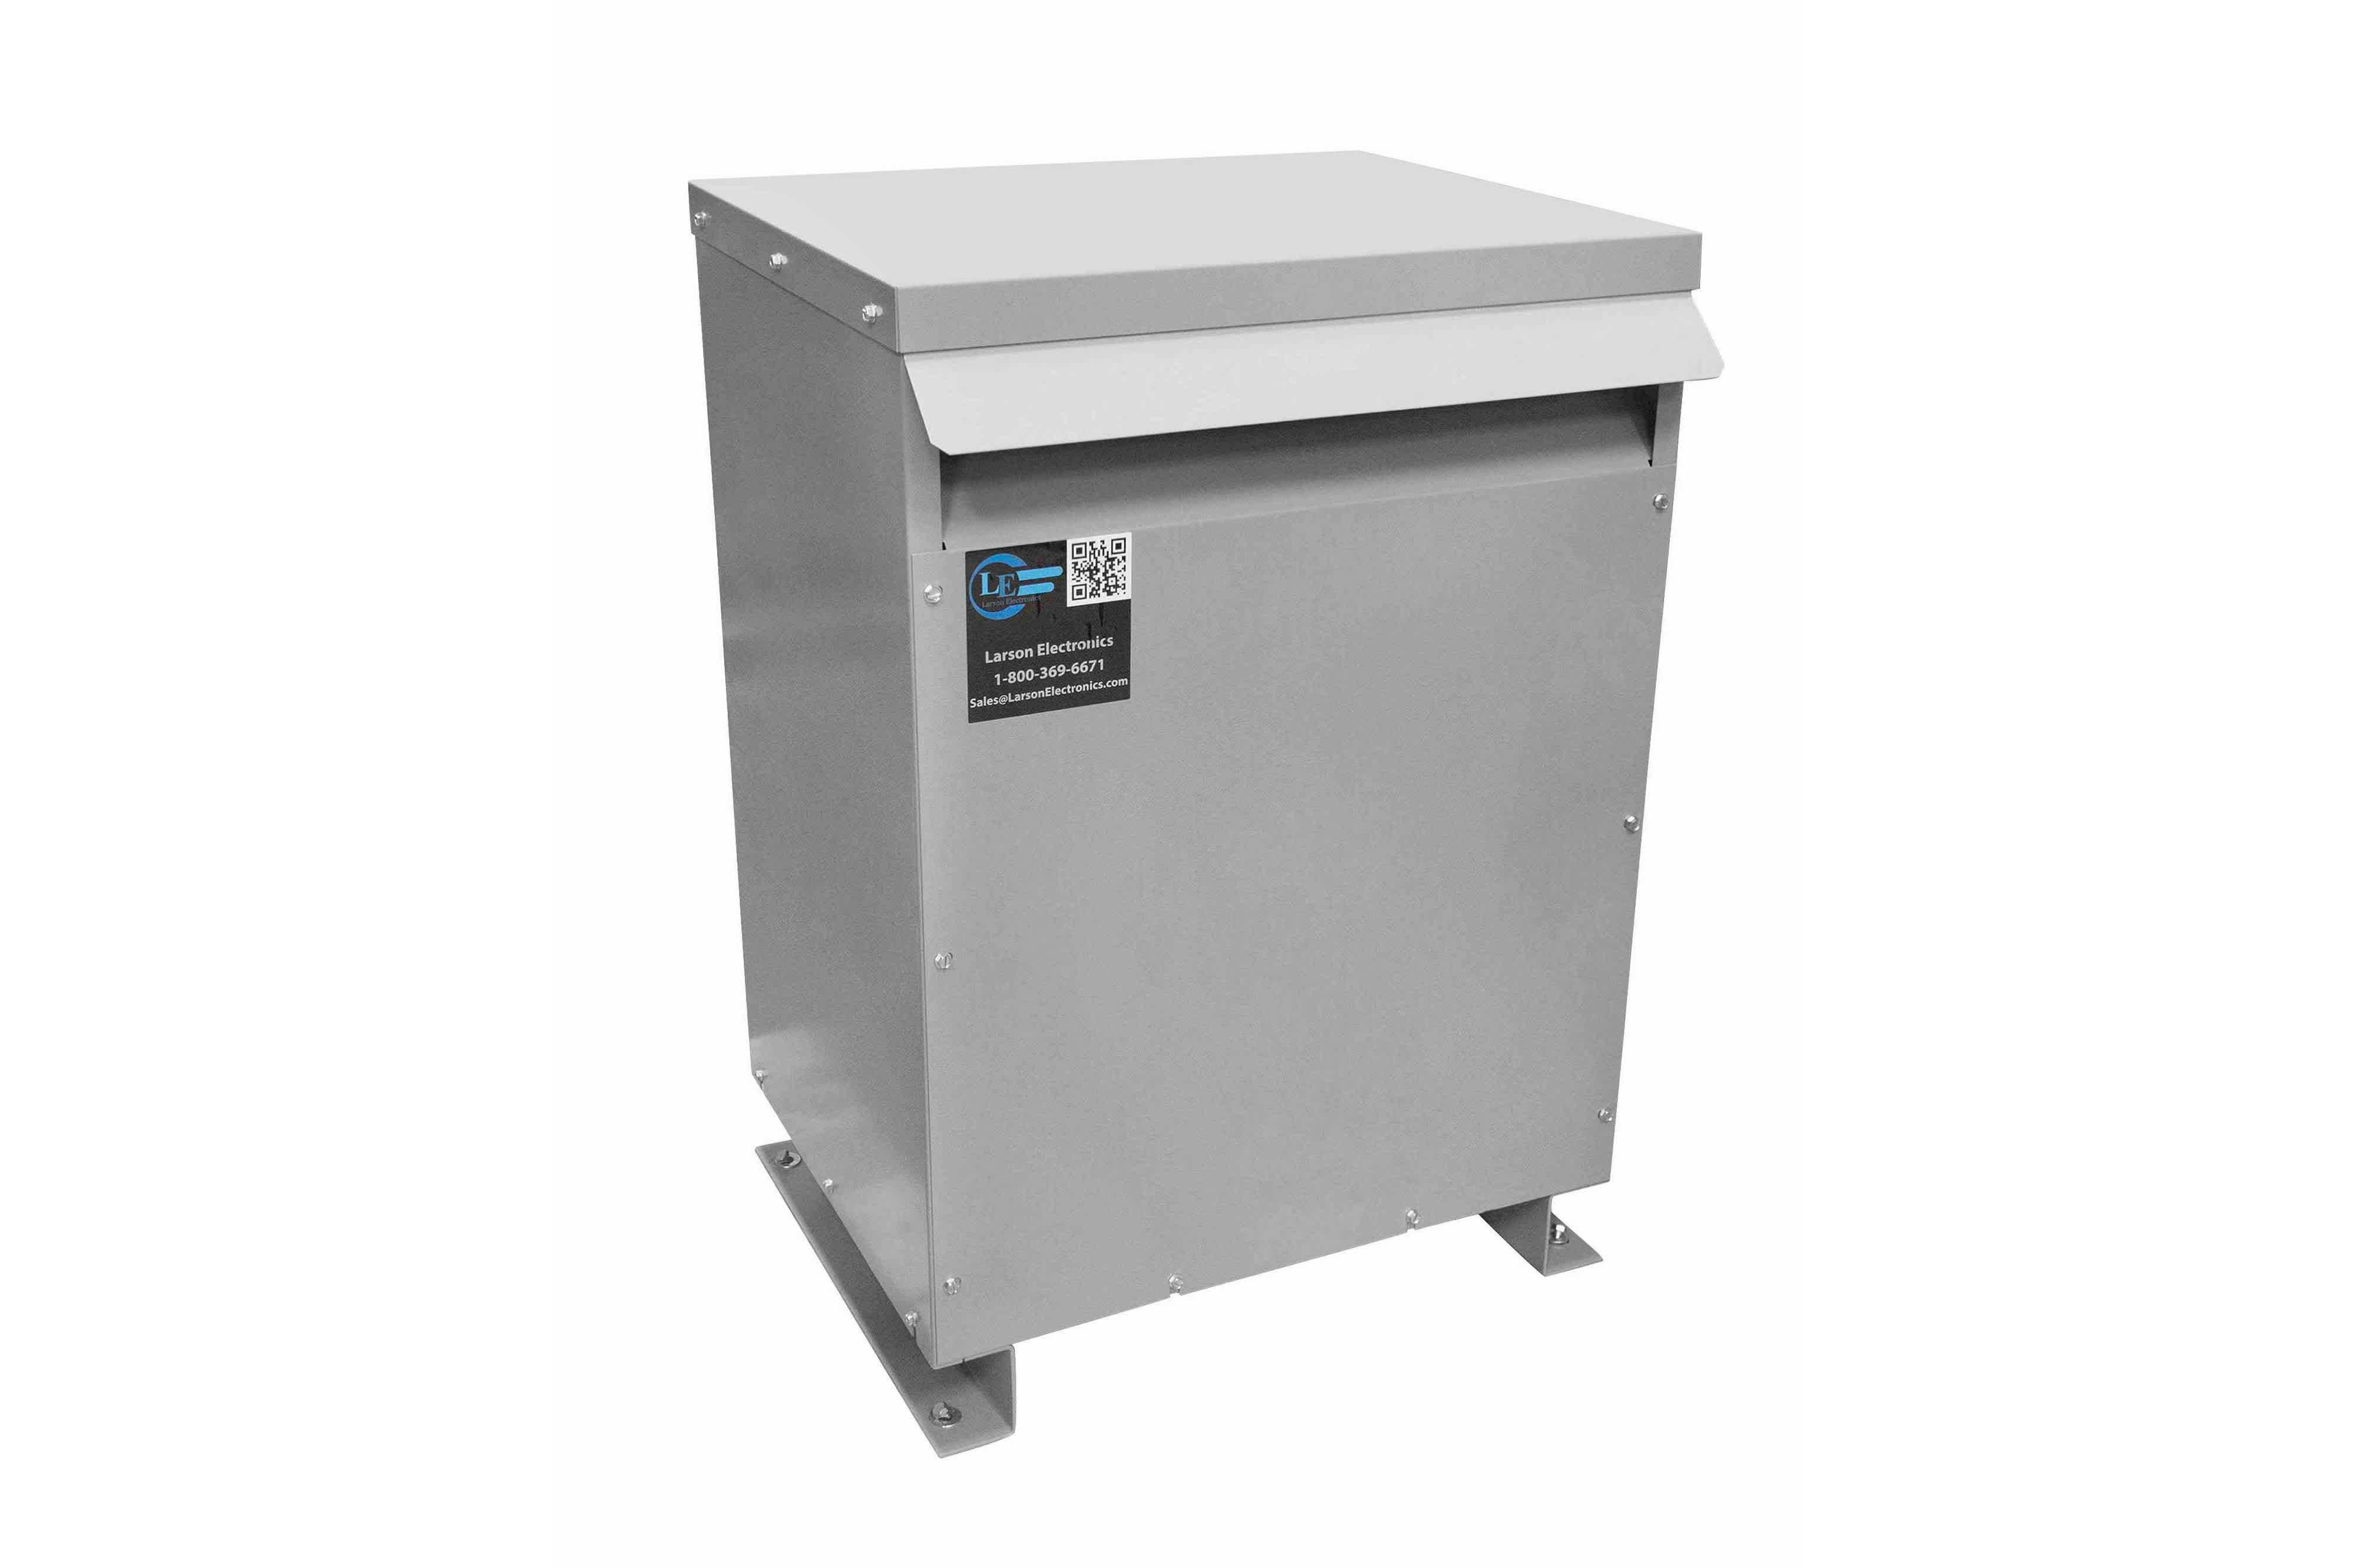 110 kVA 3PH Isolation Transformer, 240V Wye Primary, 400V Delta Secondary, N3R, Ventilated, 60 Hz